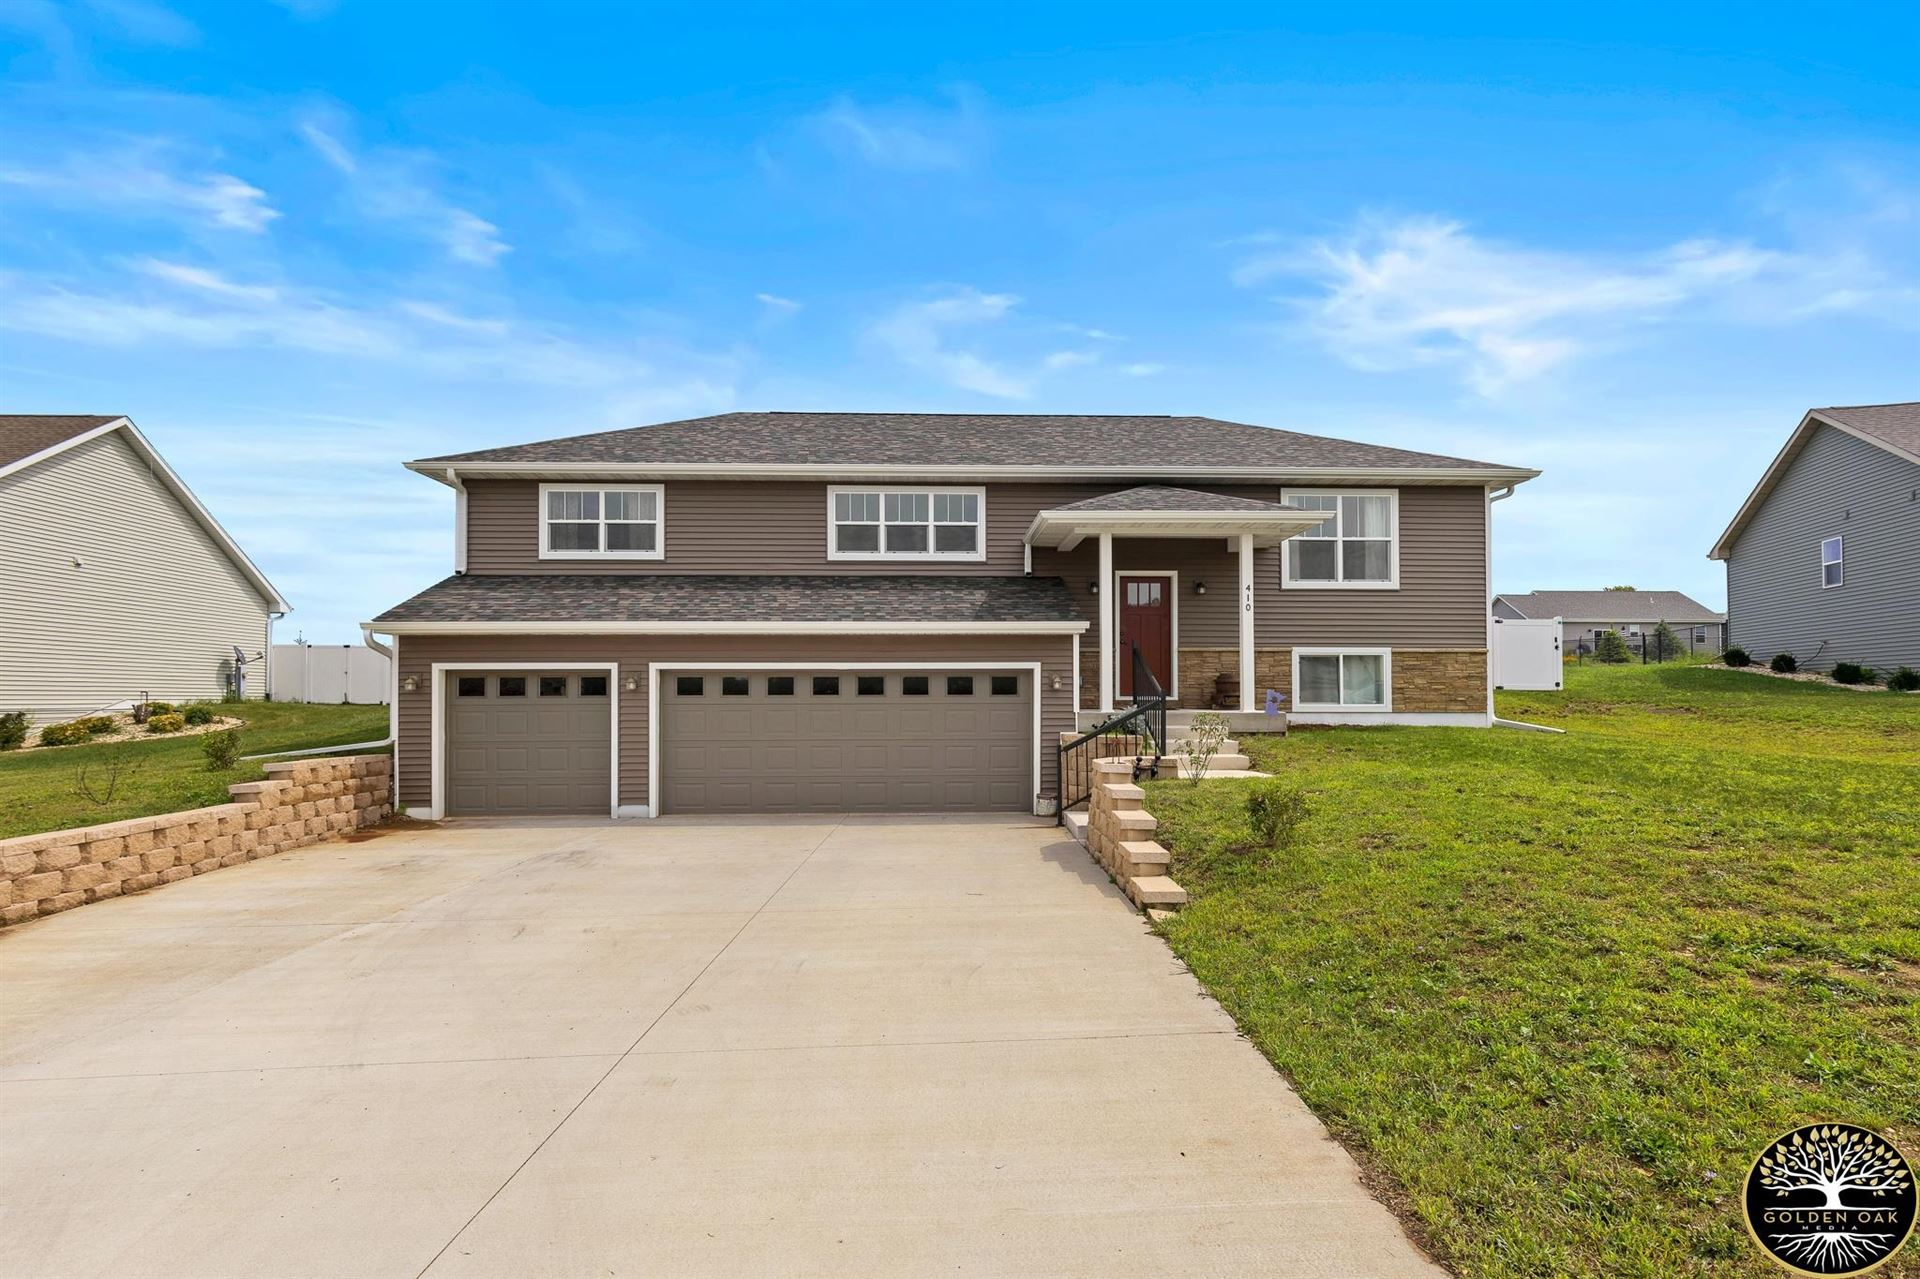 410 Comfortcove St, Orfordville, WI 53576 - #: 1918355